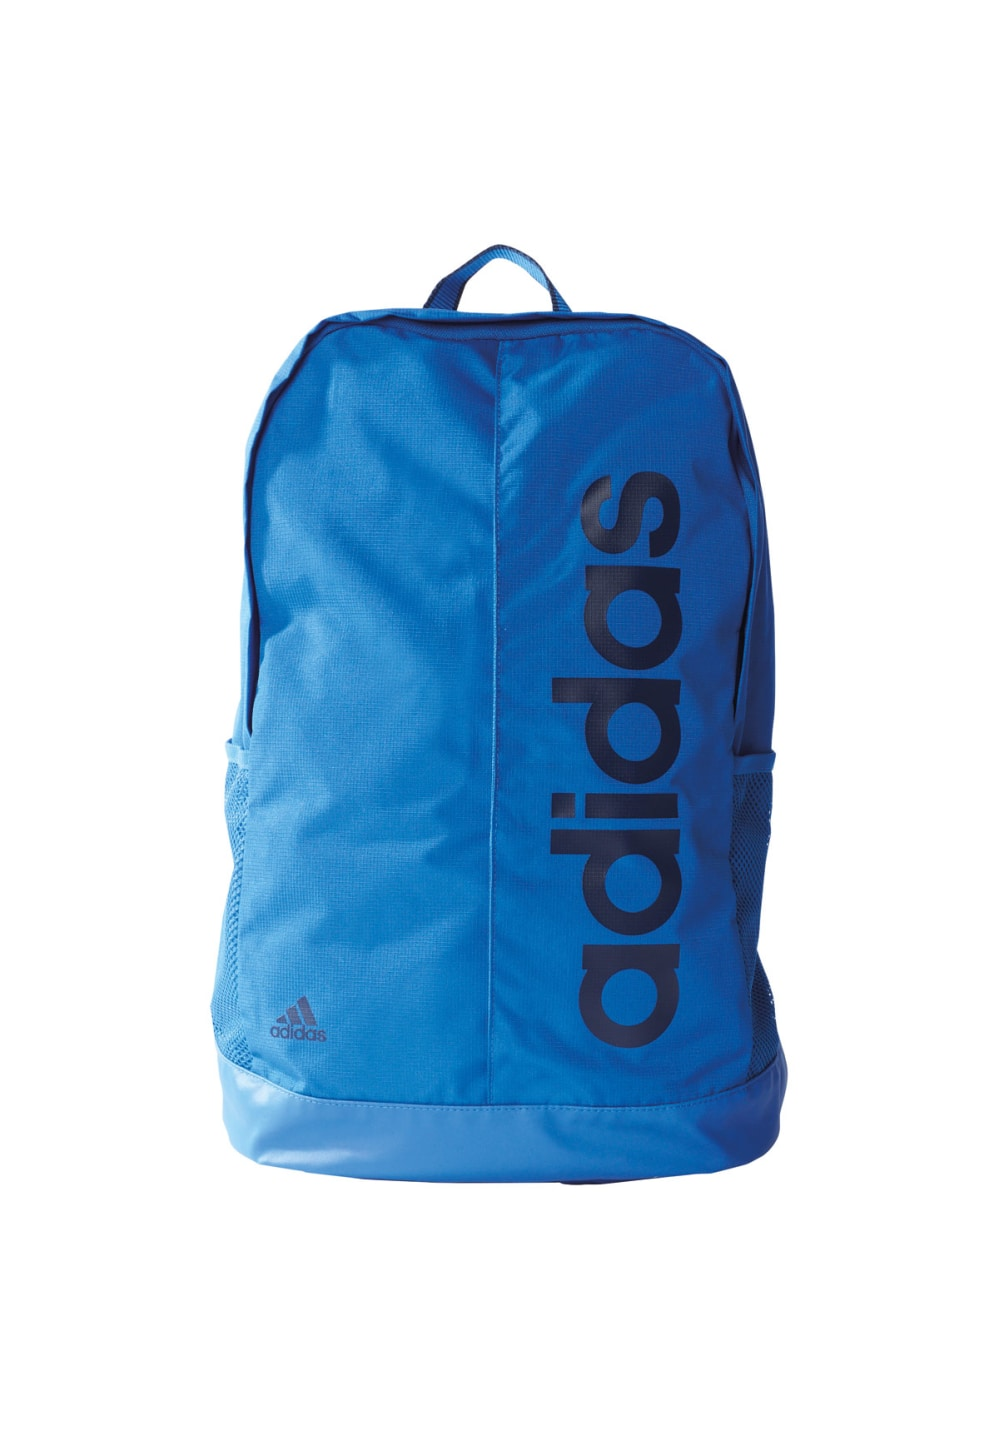 7521dff36b Next. This product is currently out of stock. adidas. Linear Performance  Backpack - Backpacks